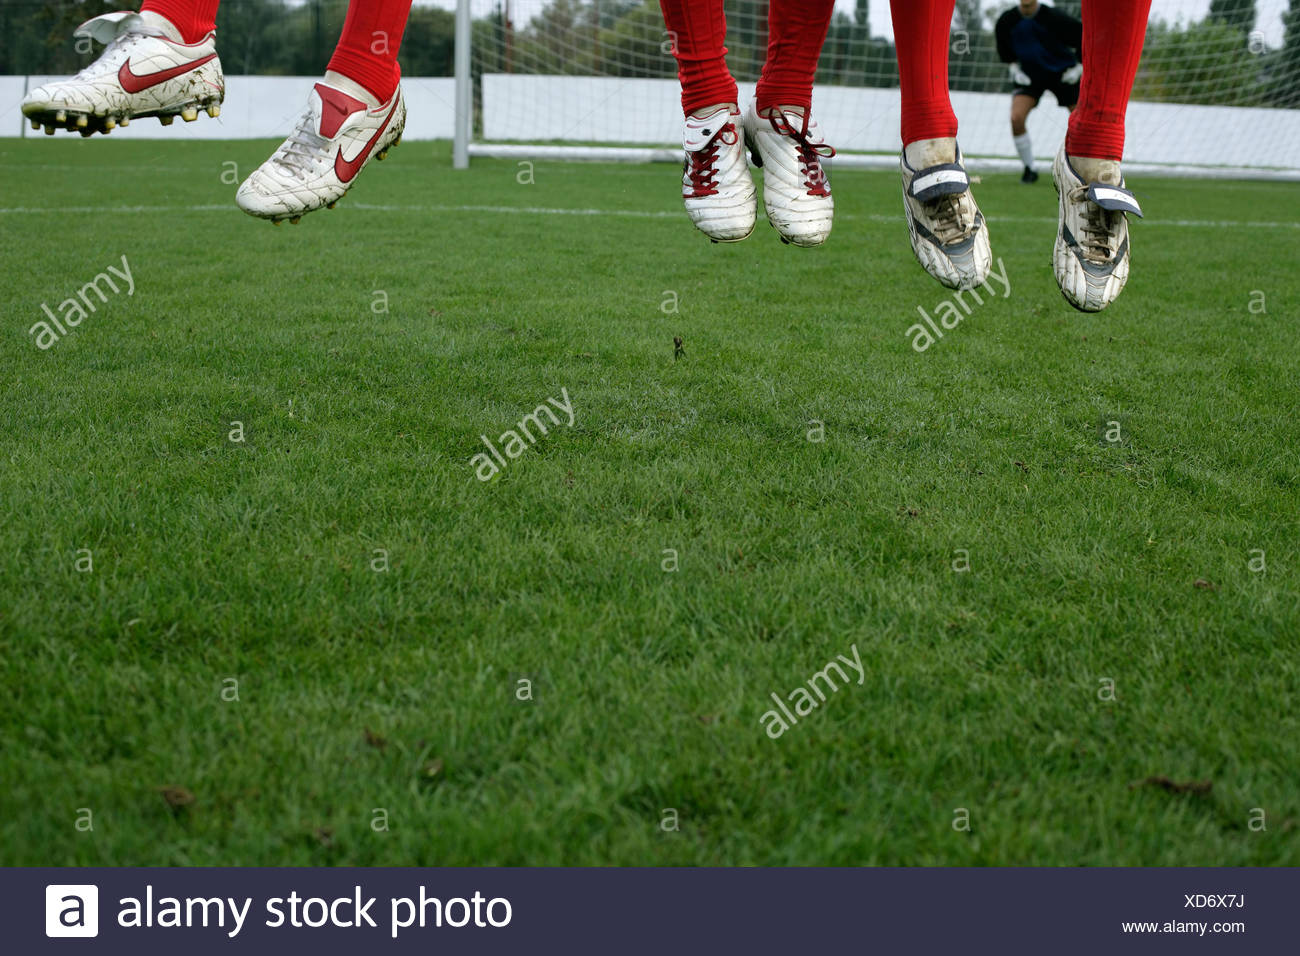 Soccer players in a wall jumping - Stock Image